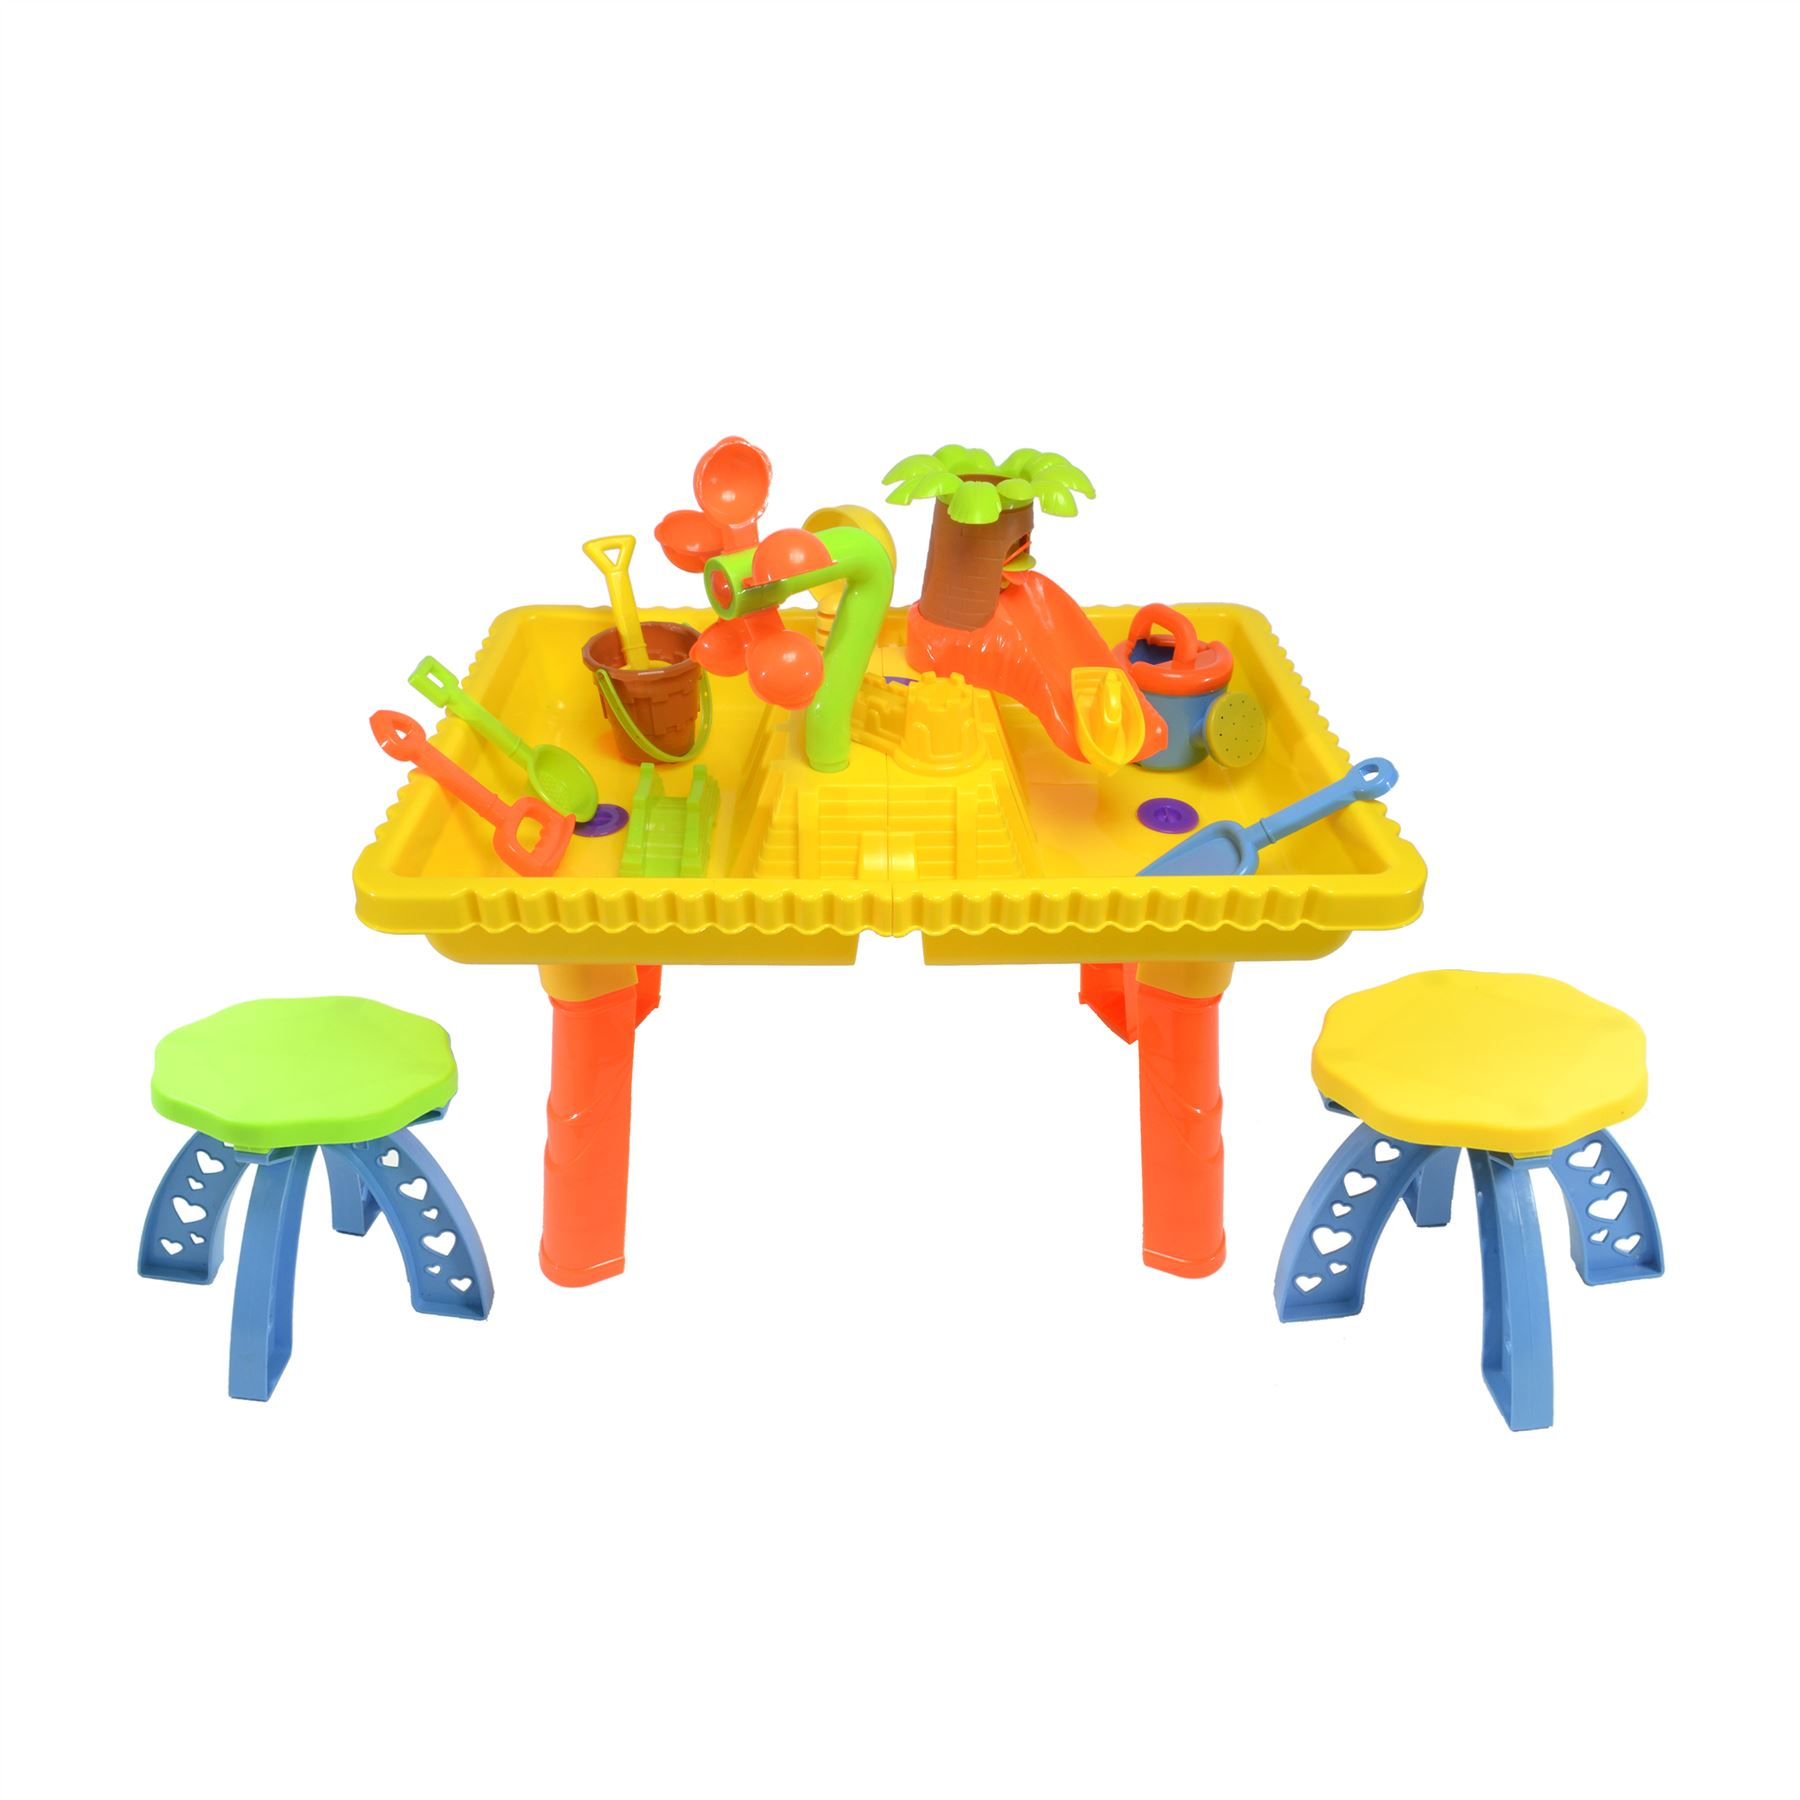 Castle Sand and Water Table set with 2 seats and 10 pieces 9809 8